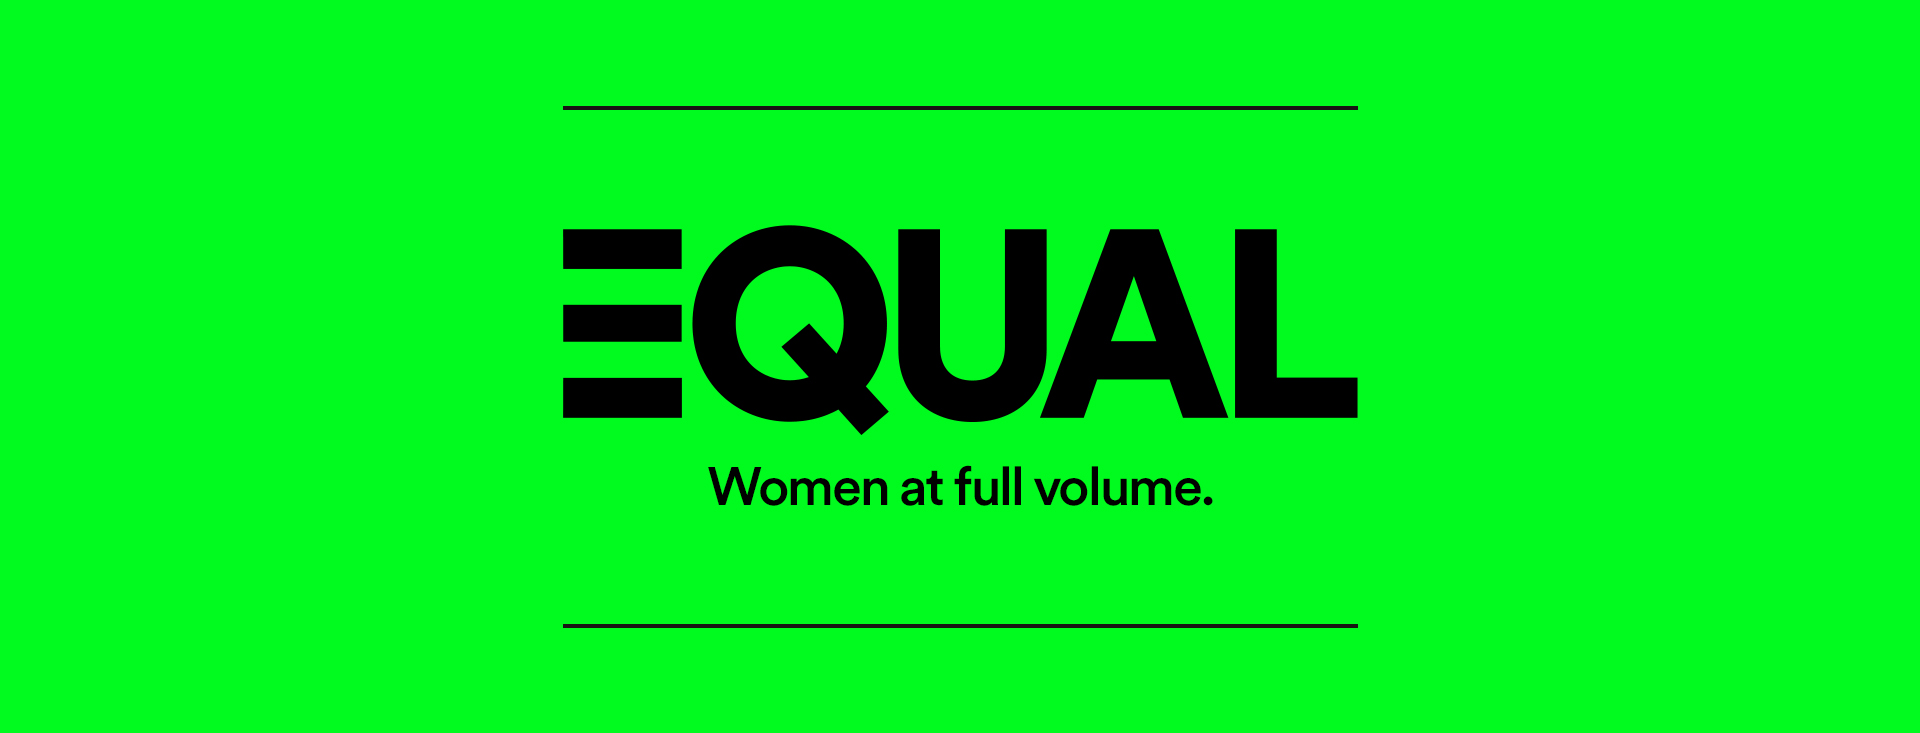 Get to Know Some of the Women Featured in Spotify's New EQUAL Music Program — Spotify